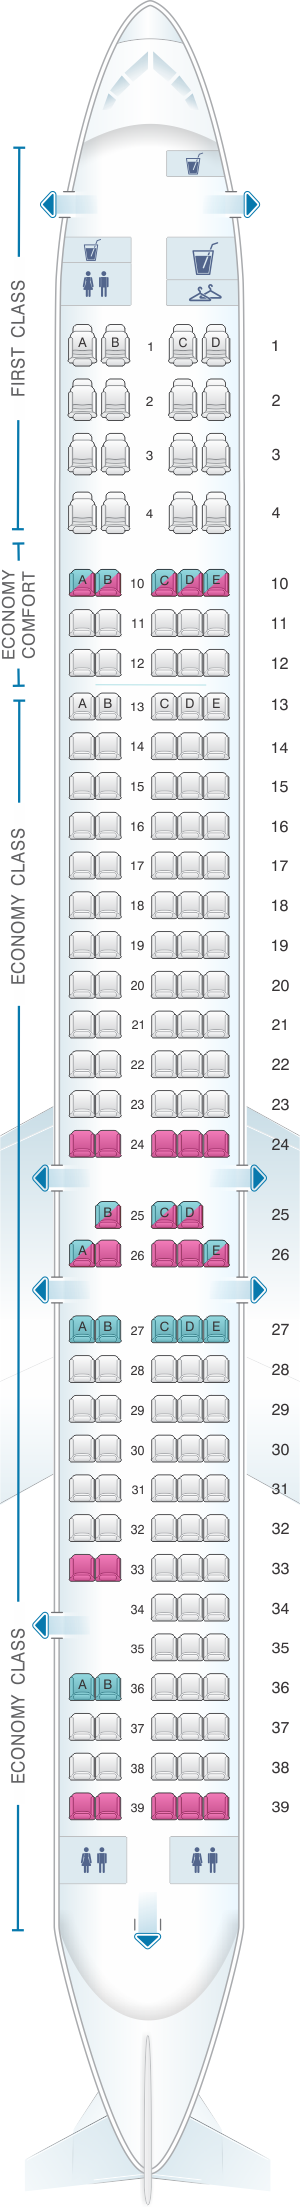 Seat map for Delta Airlines McDonnell Douglas MD 90